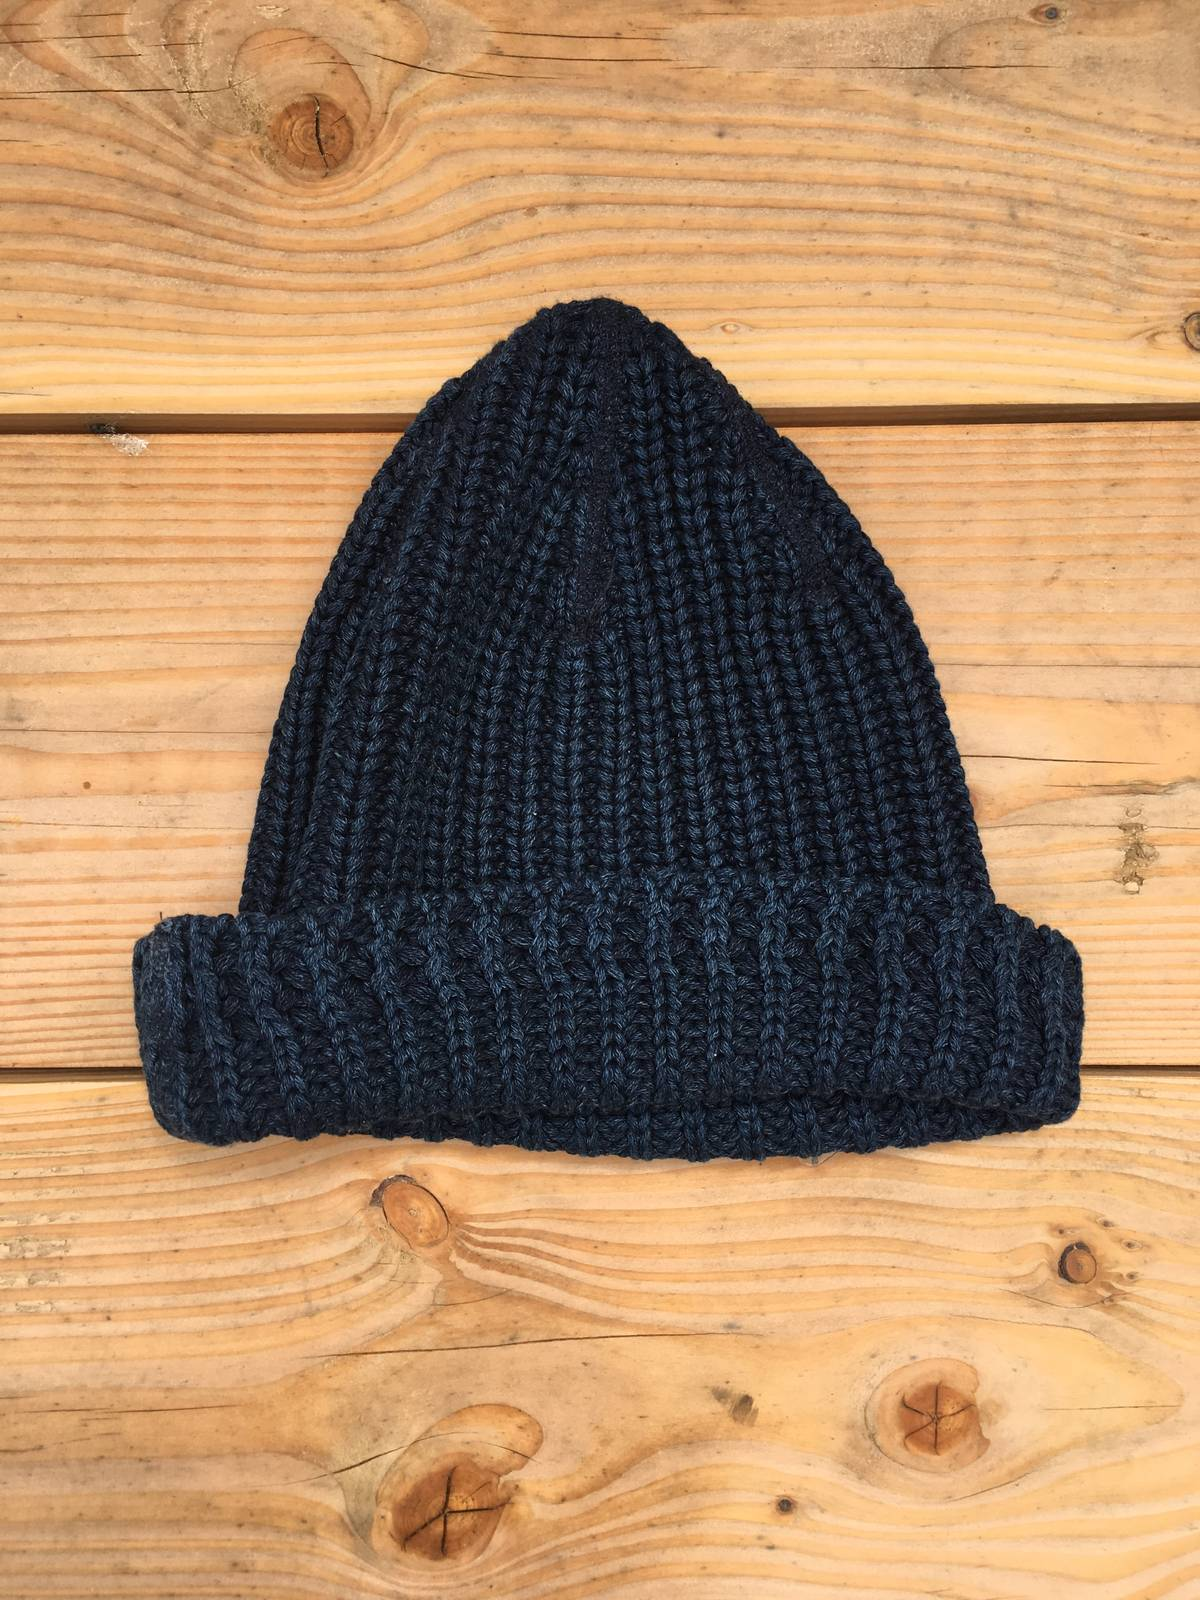 da04b9bd1 Our Legacy Our Legacy Knitted Hat Fluffy Marine Size One Size $45